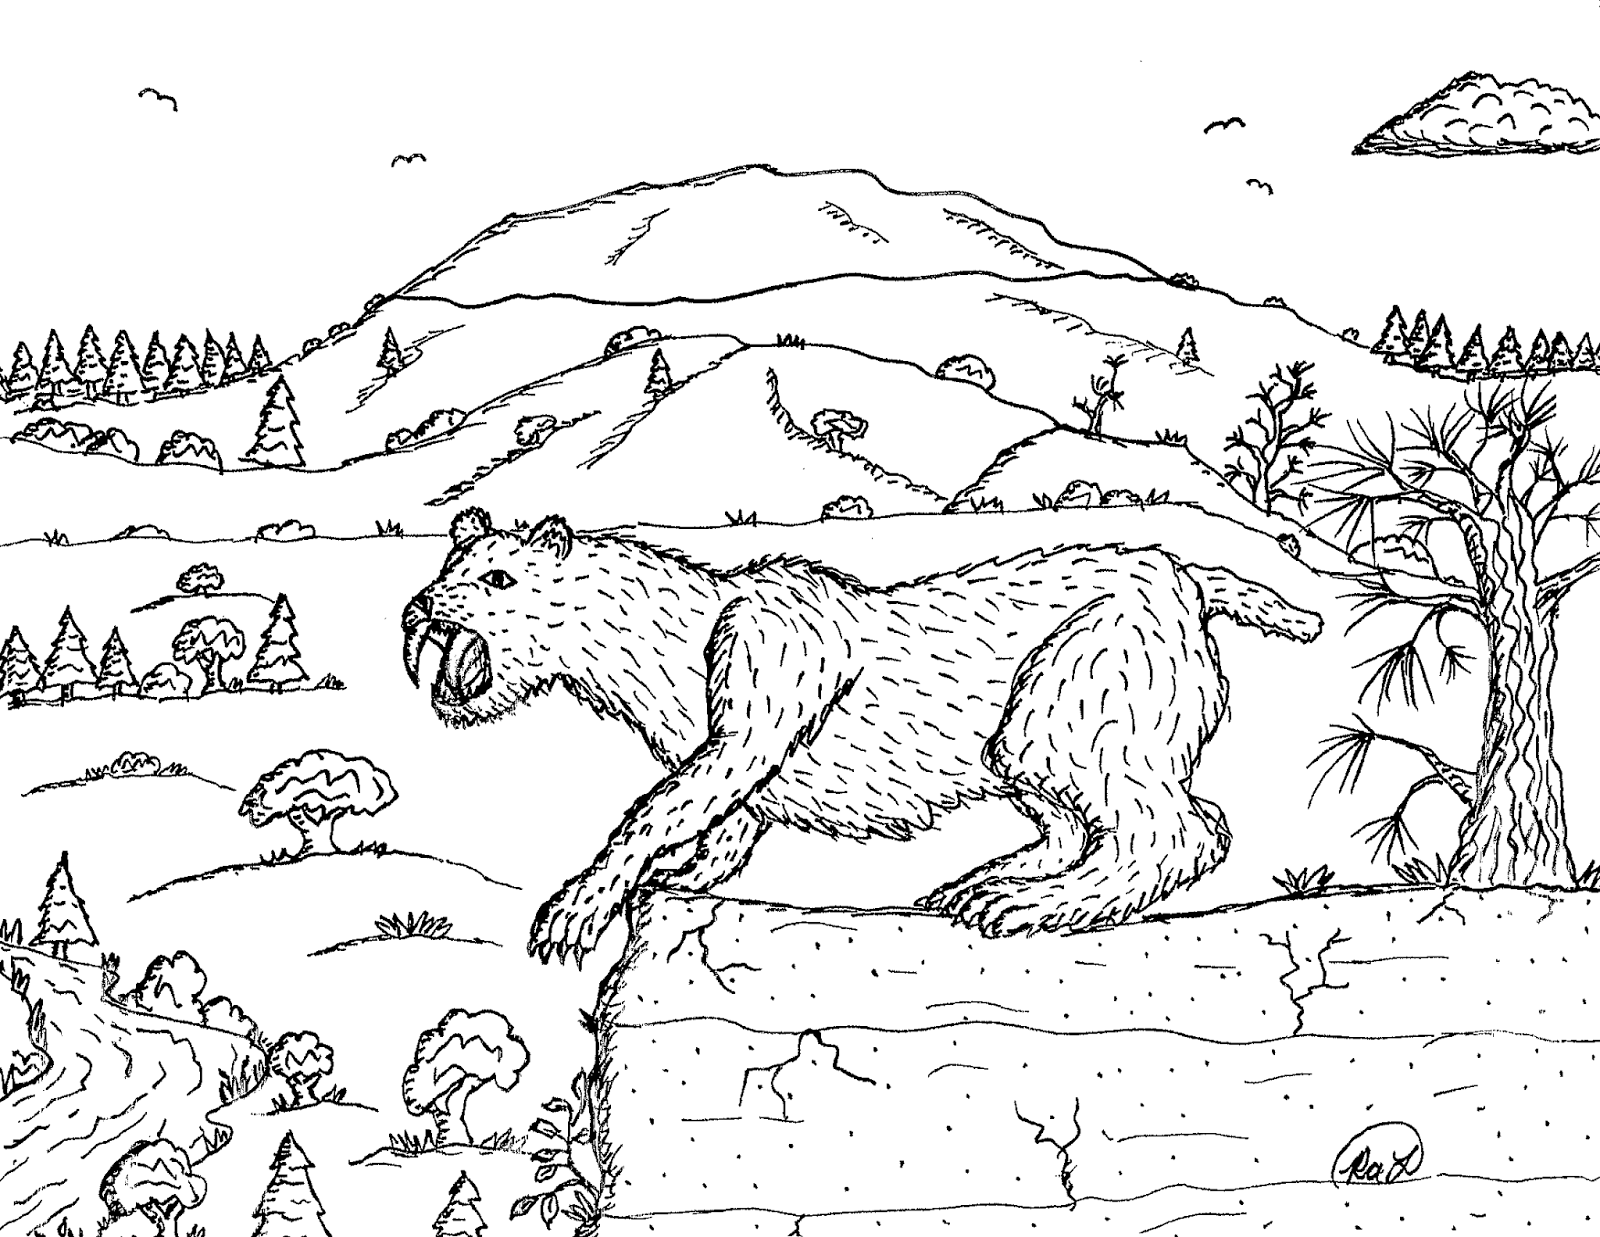 Robin S Great Coloring Pages Smilodon Saber Tooth Cats